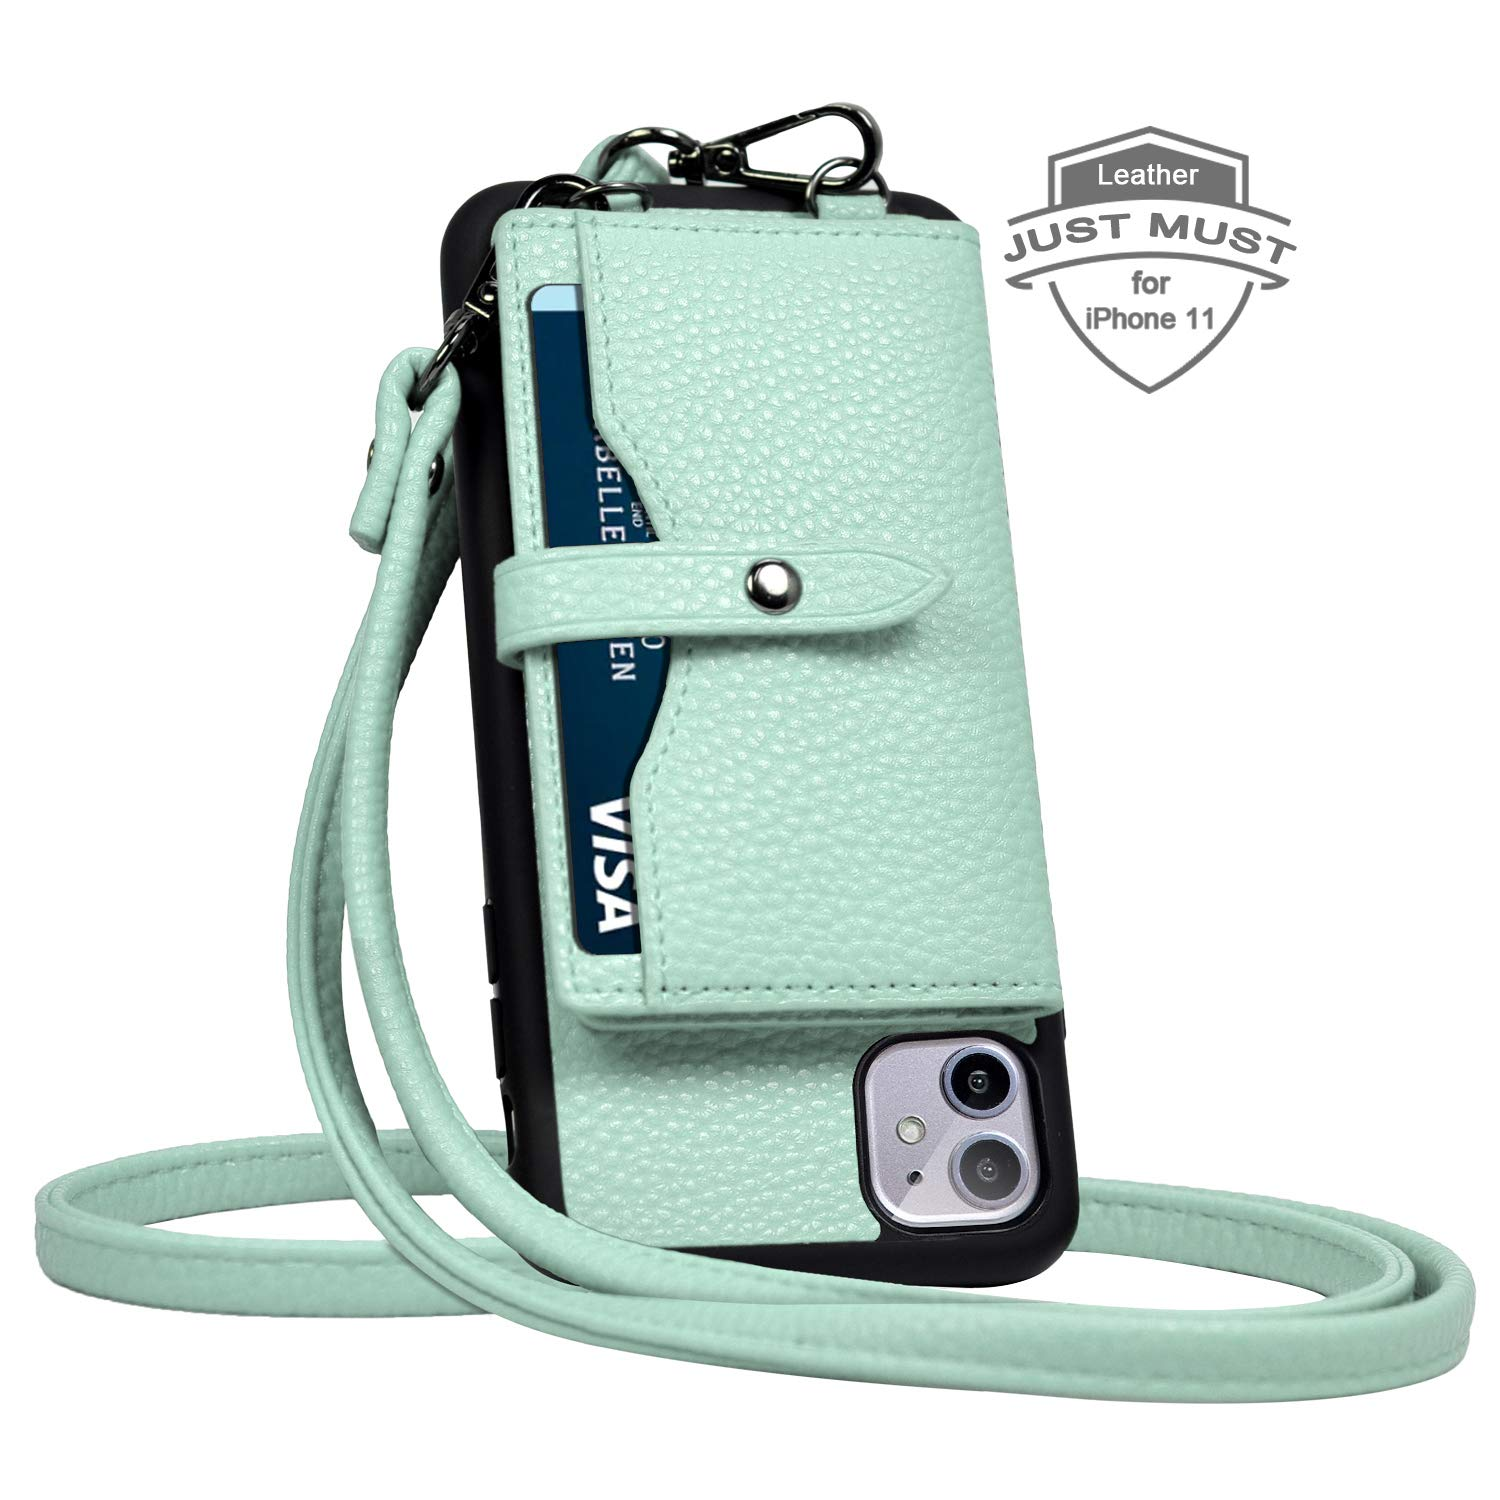 JM JUST MUST iPhone 11 Wallet Case,iPhone 11 Crossbody Case with Credit Card Holder case,iPhone 11 Strap Case,Leather Case Protective Cover for iPhone 11 6.1 inch_Light Green